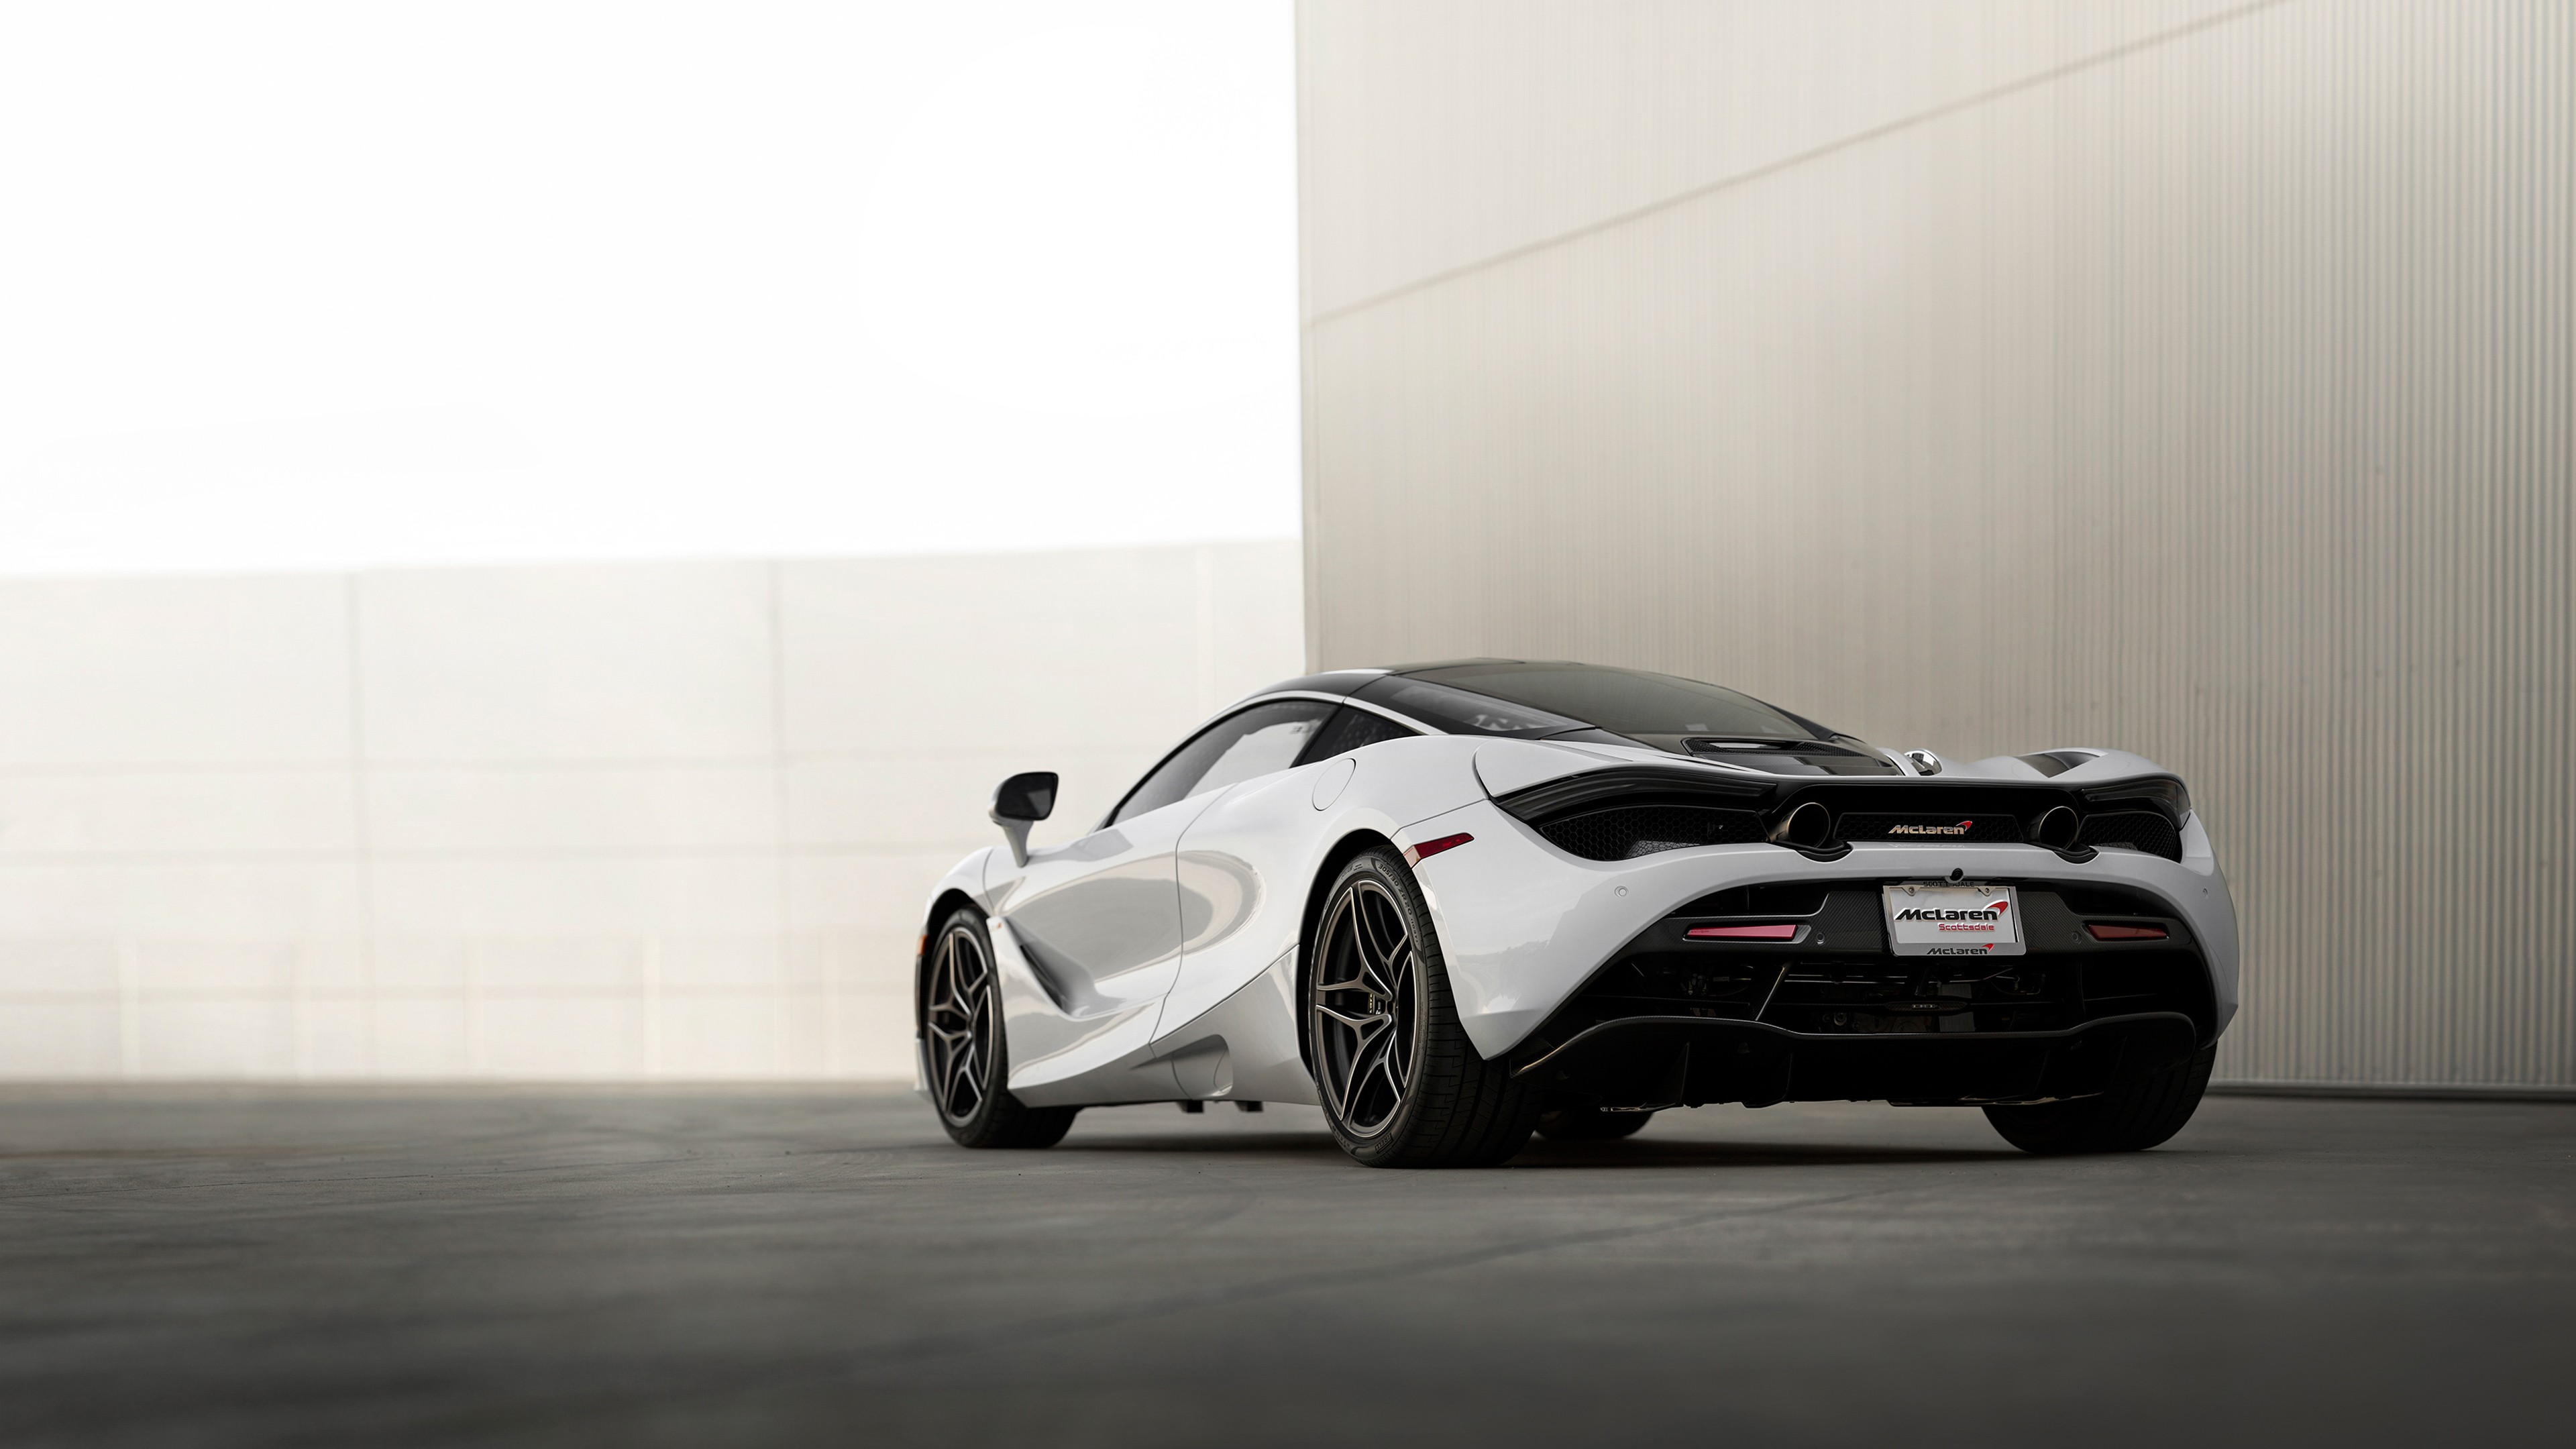 McLaren 720s Coupe 4K Wallpaper | HD Car Wallpapers | ID #8811